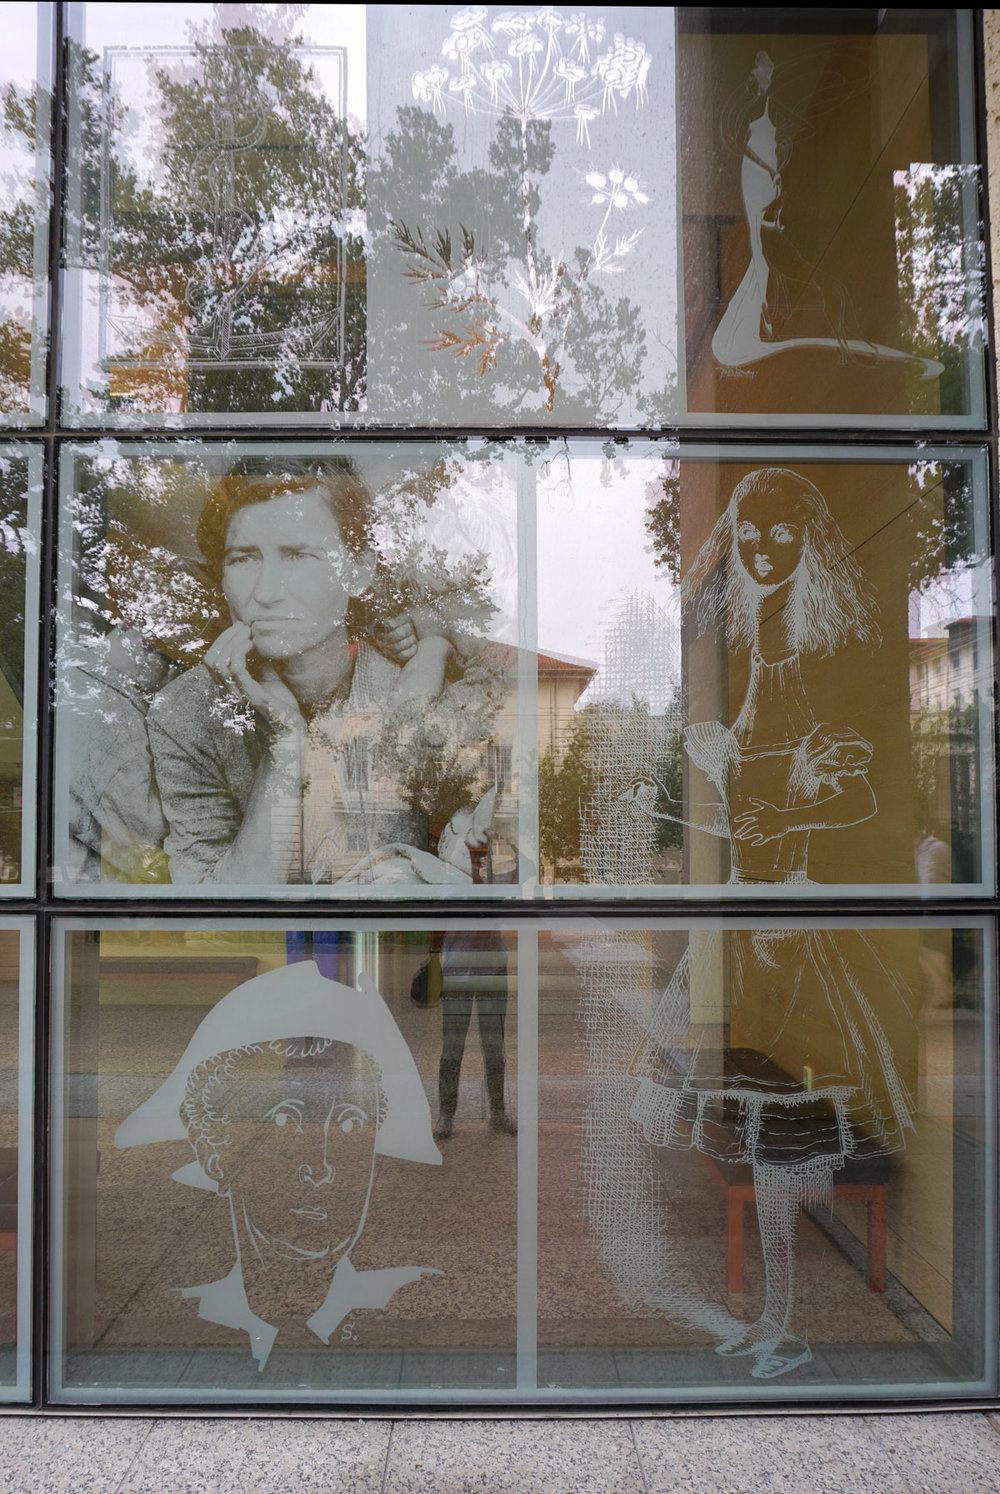 © 2018 Louise Levergneux. The Ransom Center's Southeast etched glass windows. Details: (middle left) Migrant Mother, Dorothea Lange, 1936, (right)   Illustration from Alice's Adventures in Wonderland, John Tenniel, 1865, (bottom left) Portrait of Marianne Moore, Robert Stewart Sherriff, 1960s.